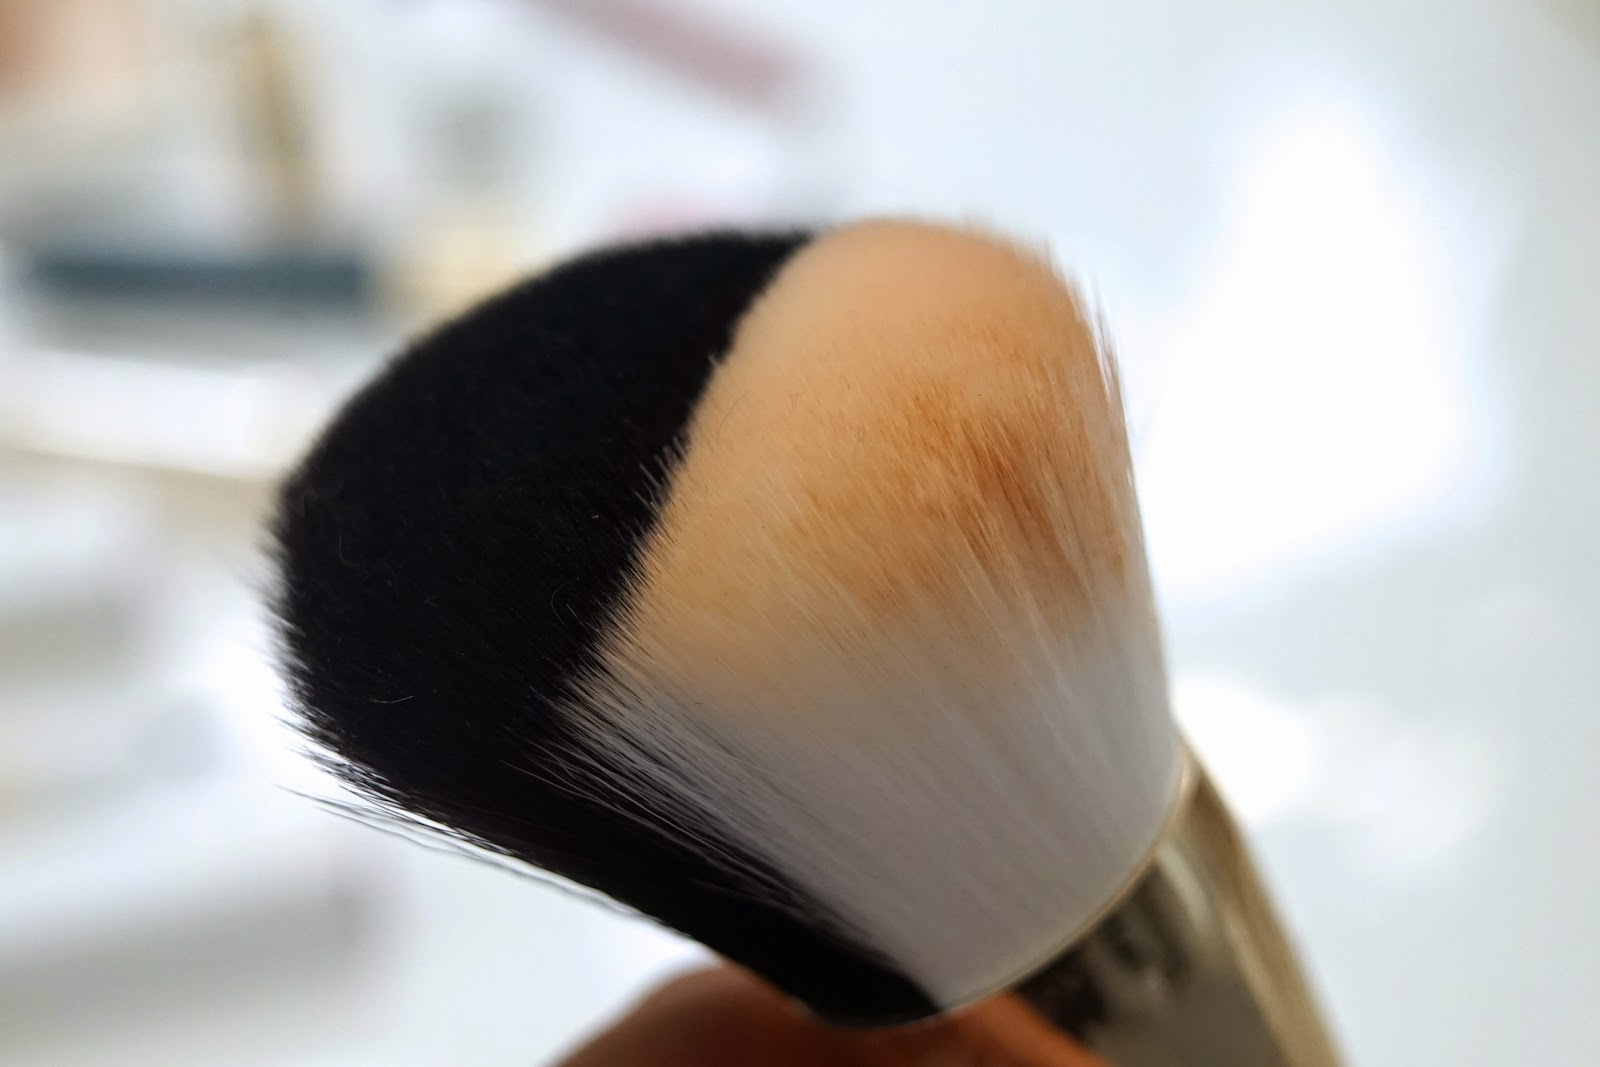 kiko daring game face brush